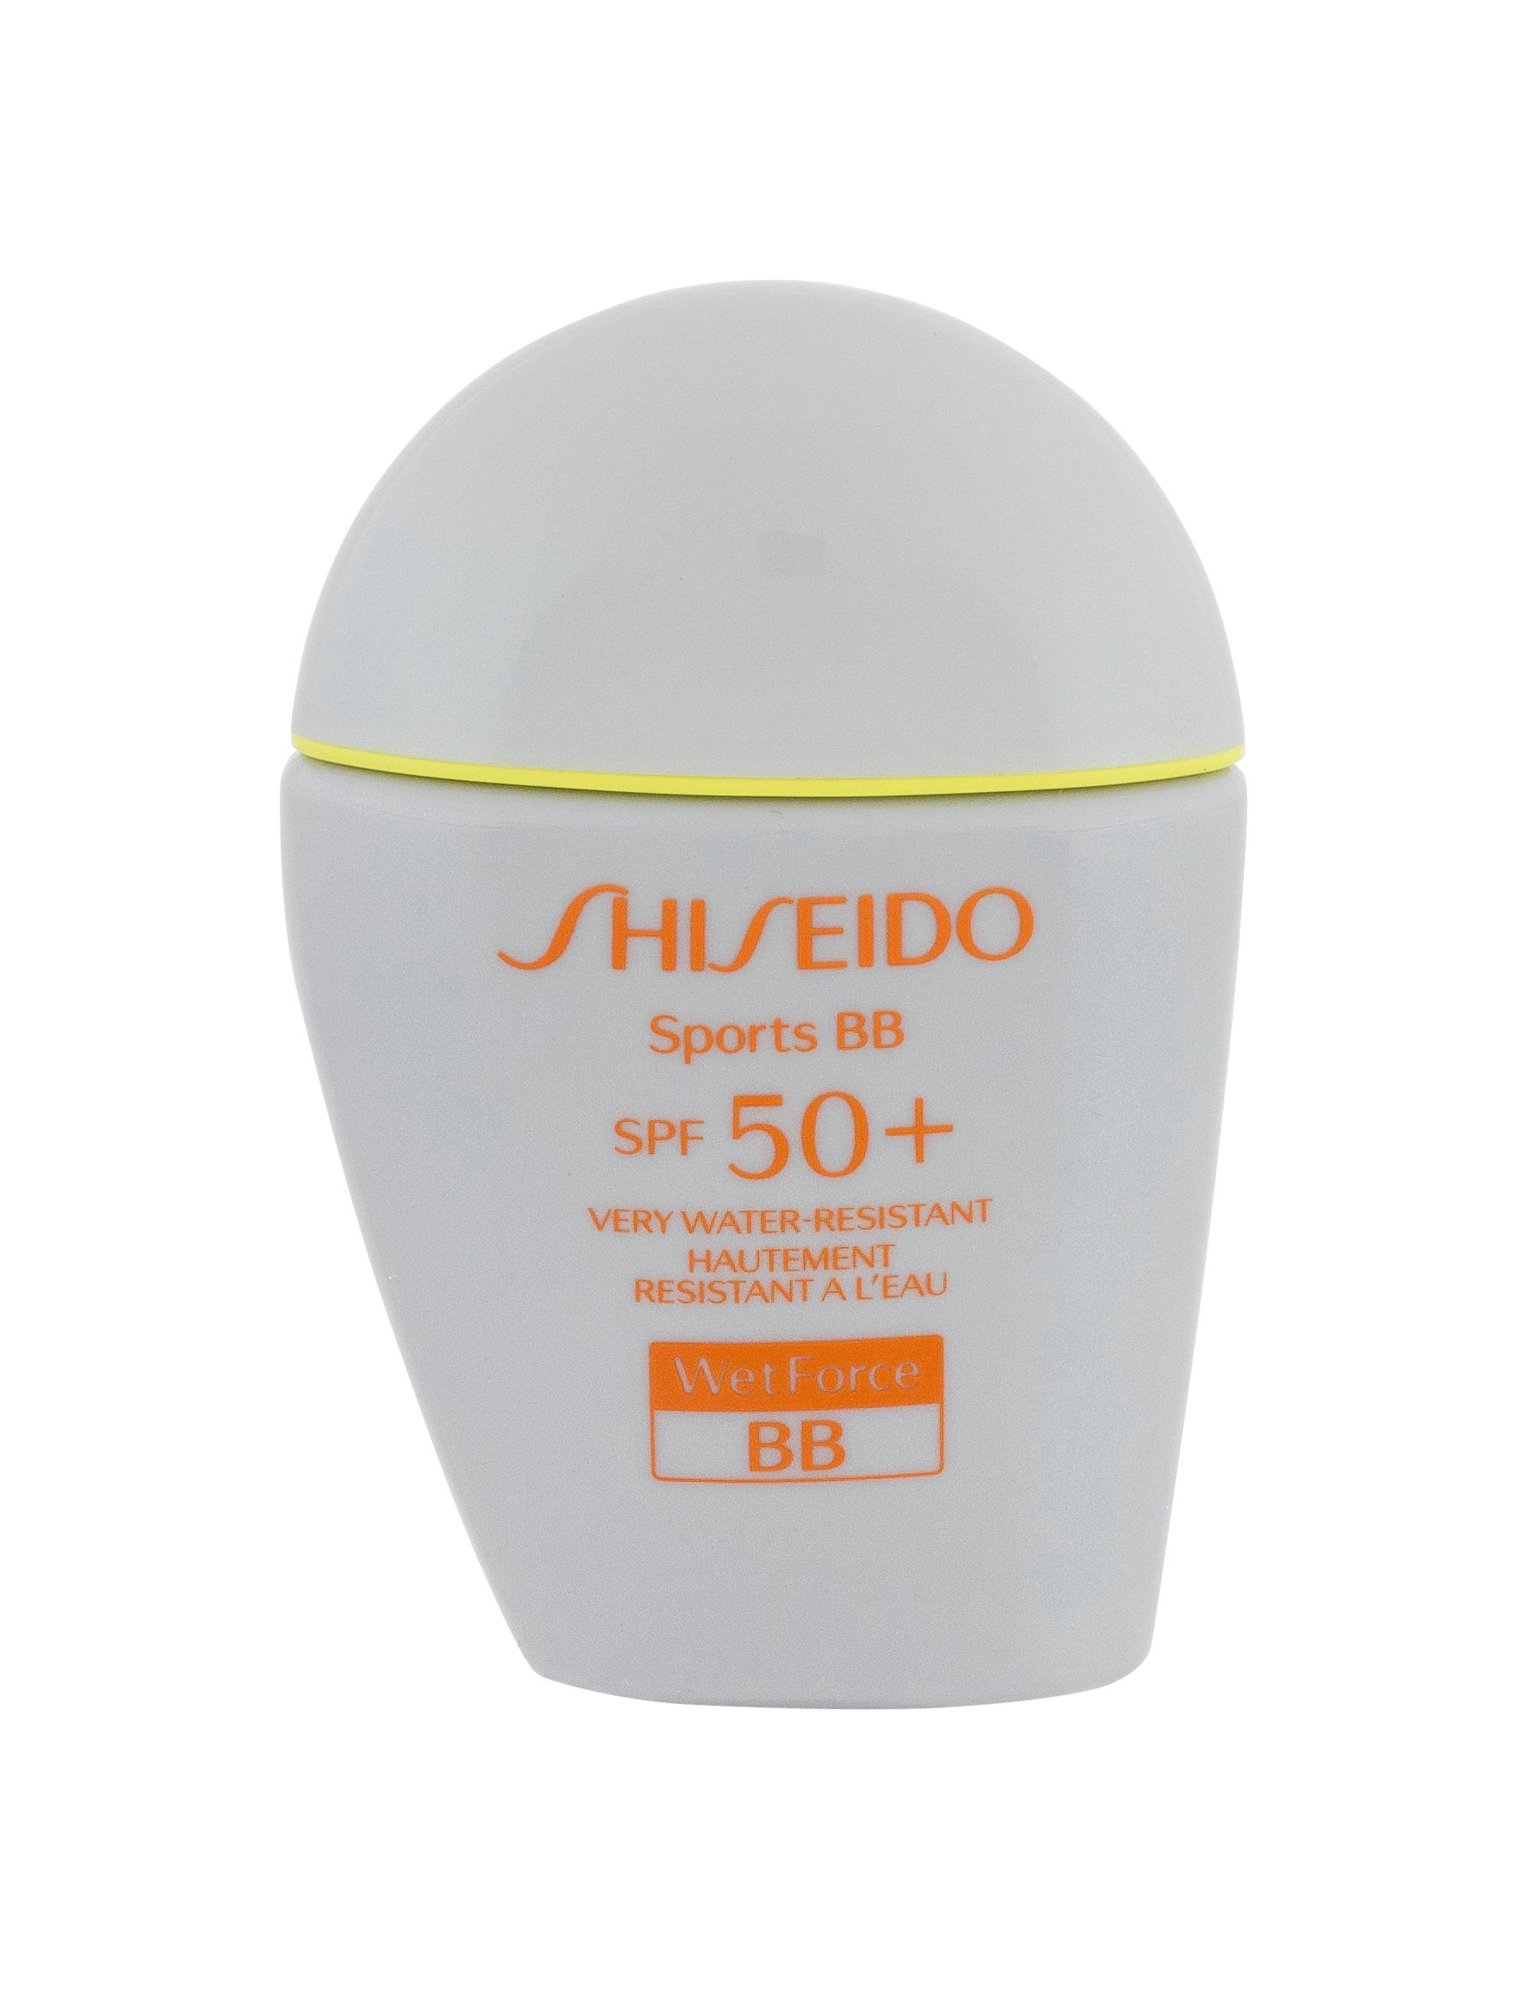 Shiseido Sports BB BB Cream 30ml Dark